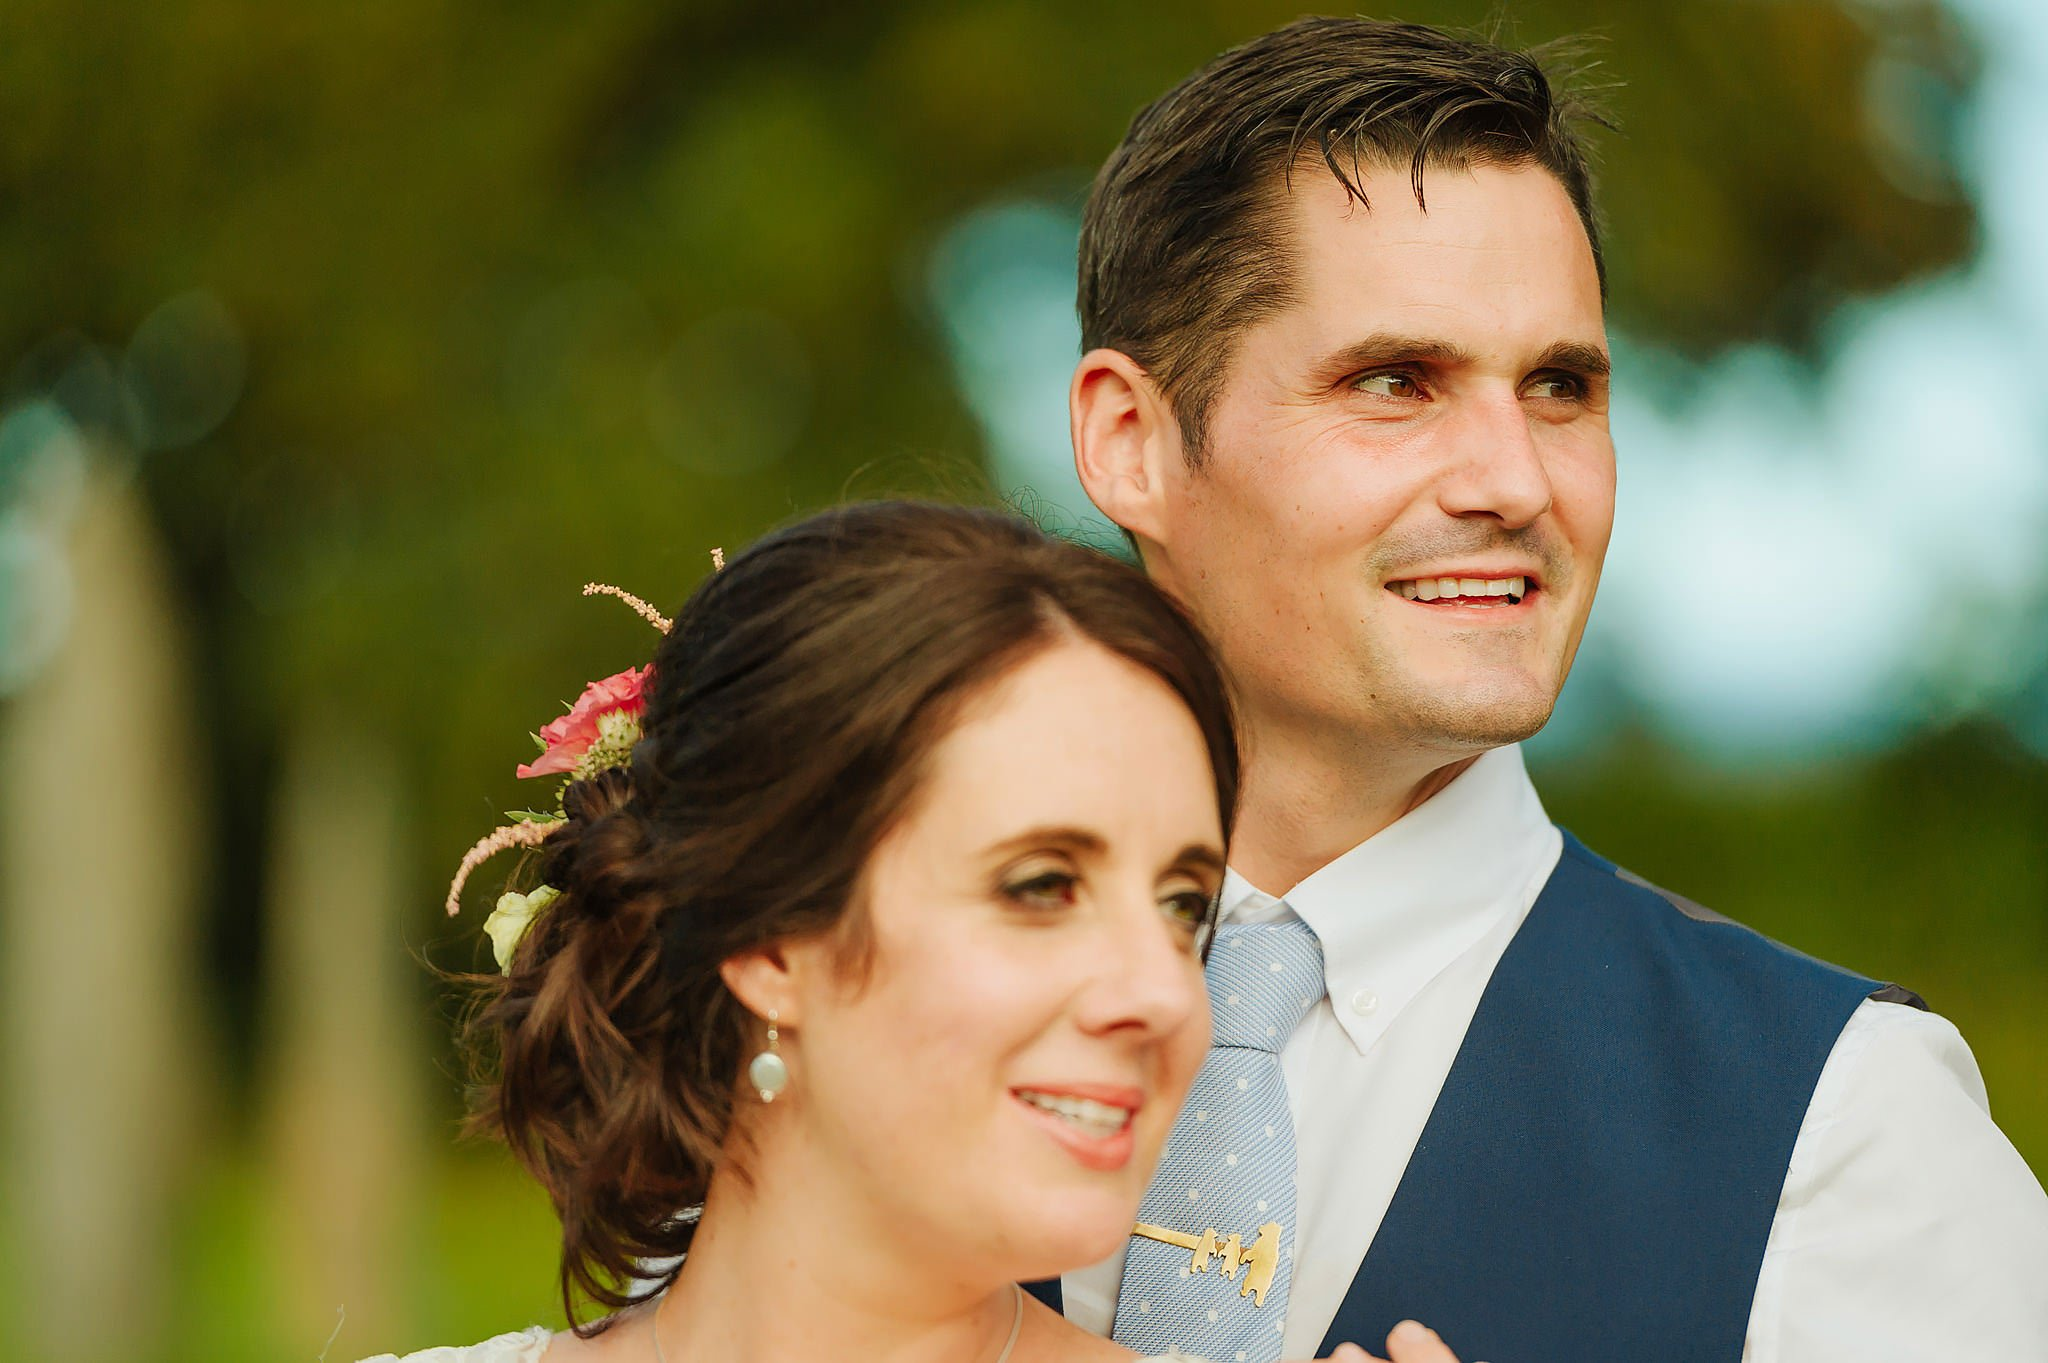 Wedding photography at Hellens Manor in Herefordshire, West Midlands | Shelley + Ian 101